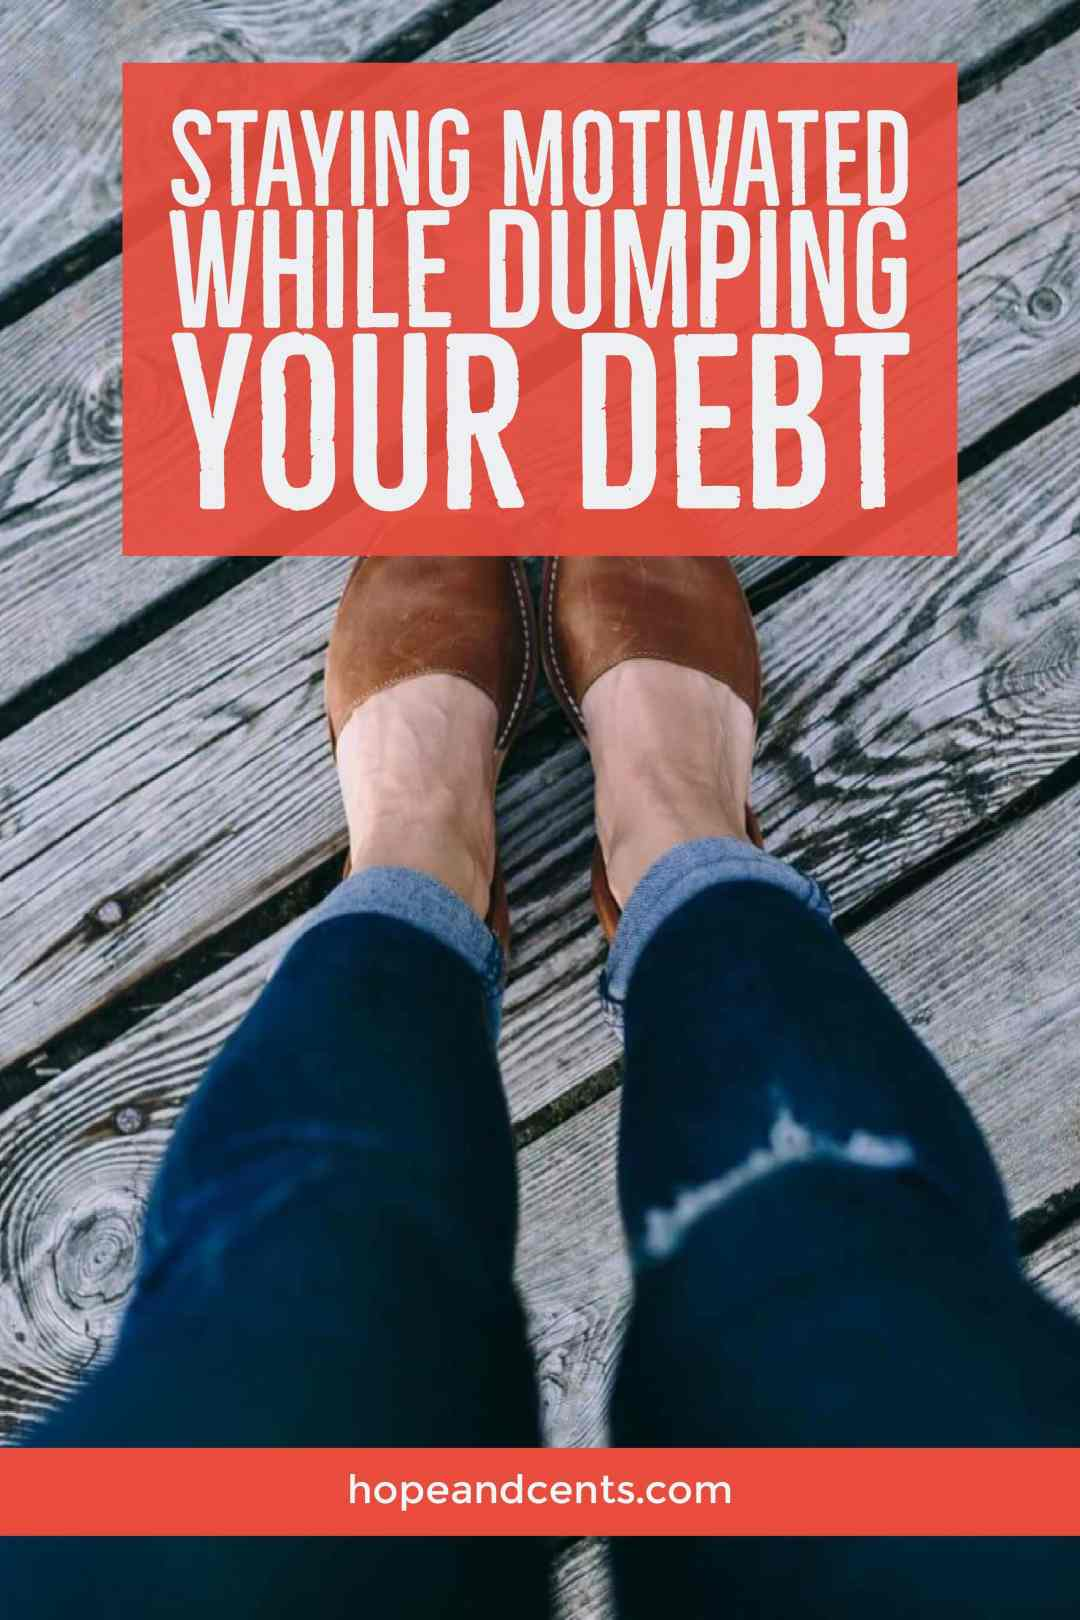 Are you in the middle of dumping your debt? If so, then you know how much work it takes. Fight the temptation to give up by learning some practical steps to stay motivated while paying off your debt.